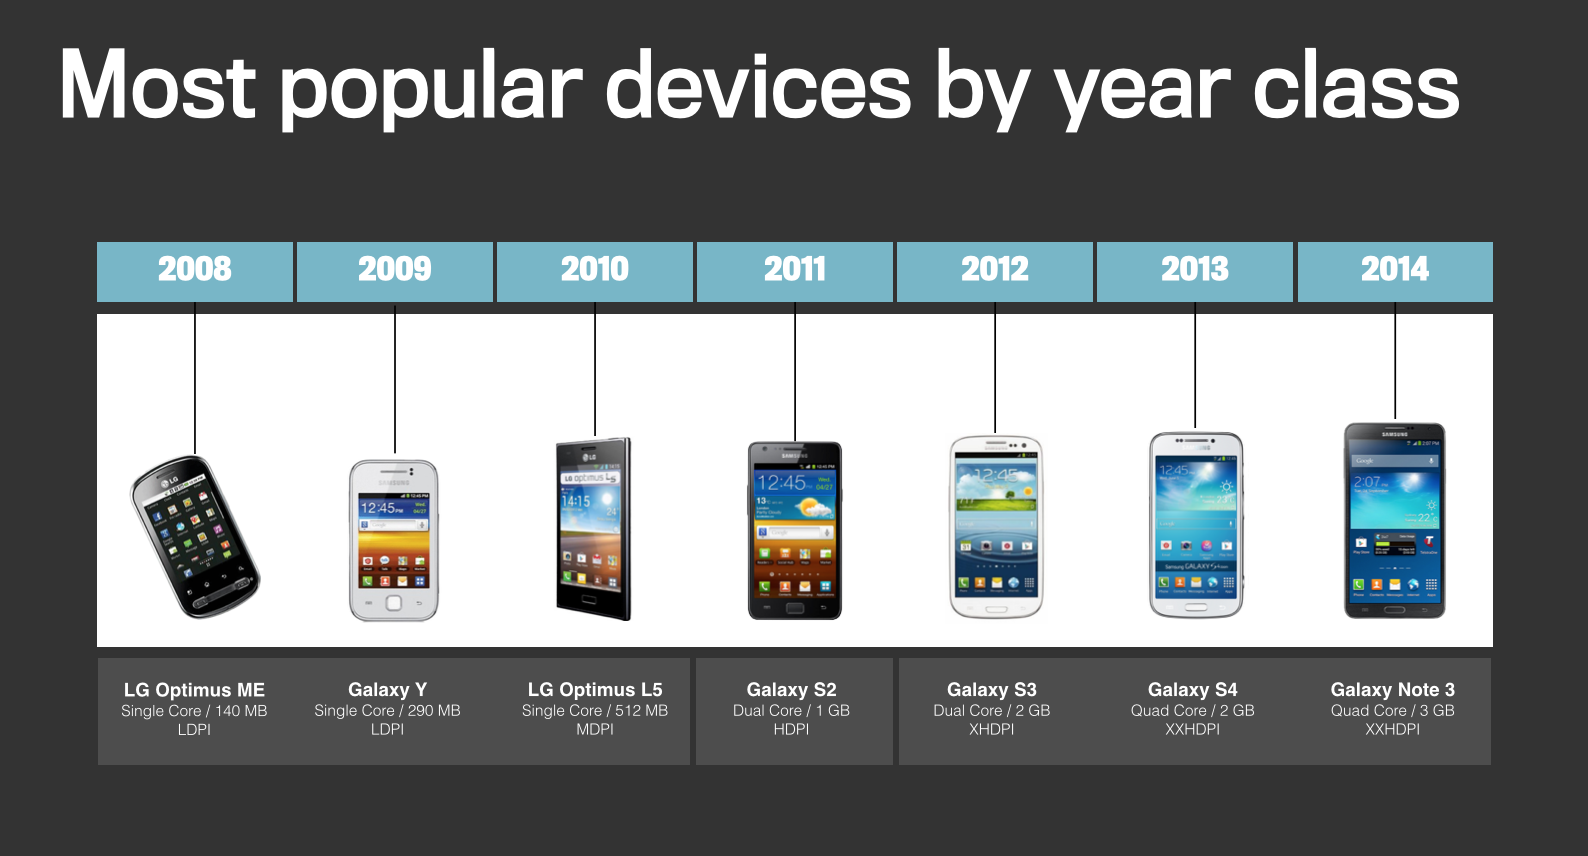 Most Popular Devices by Year Class